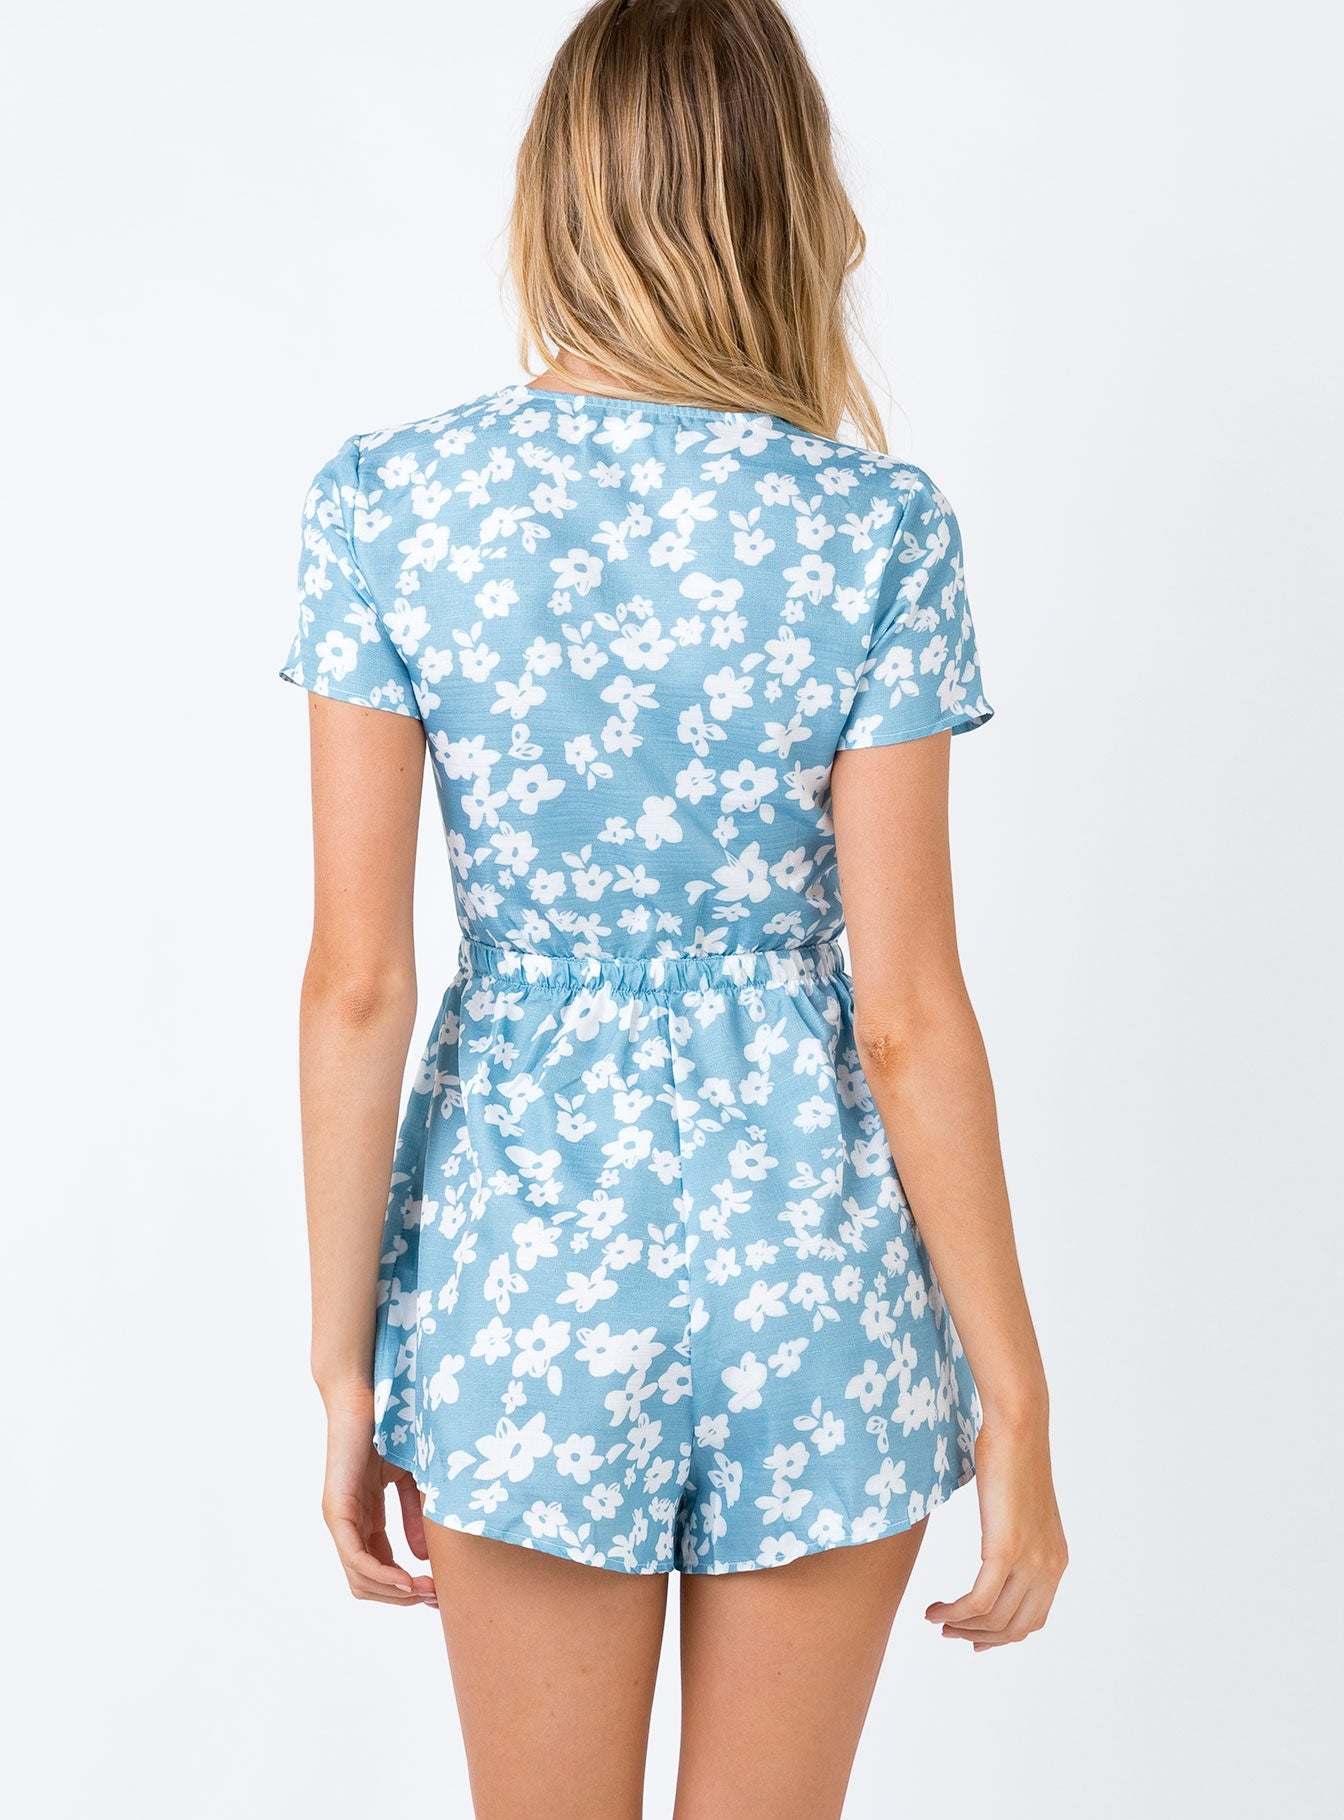 The Blue Flower Playsuit